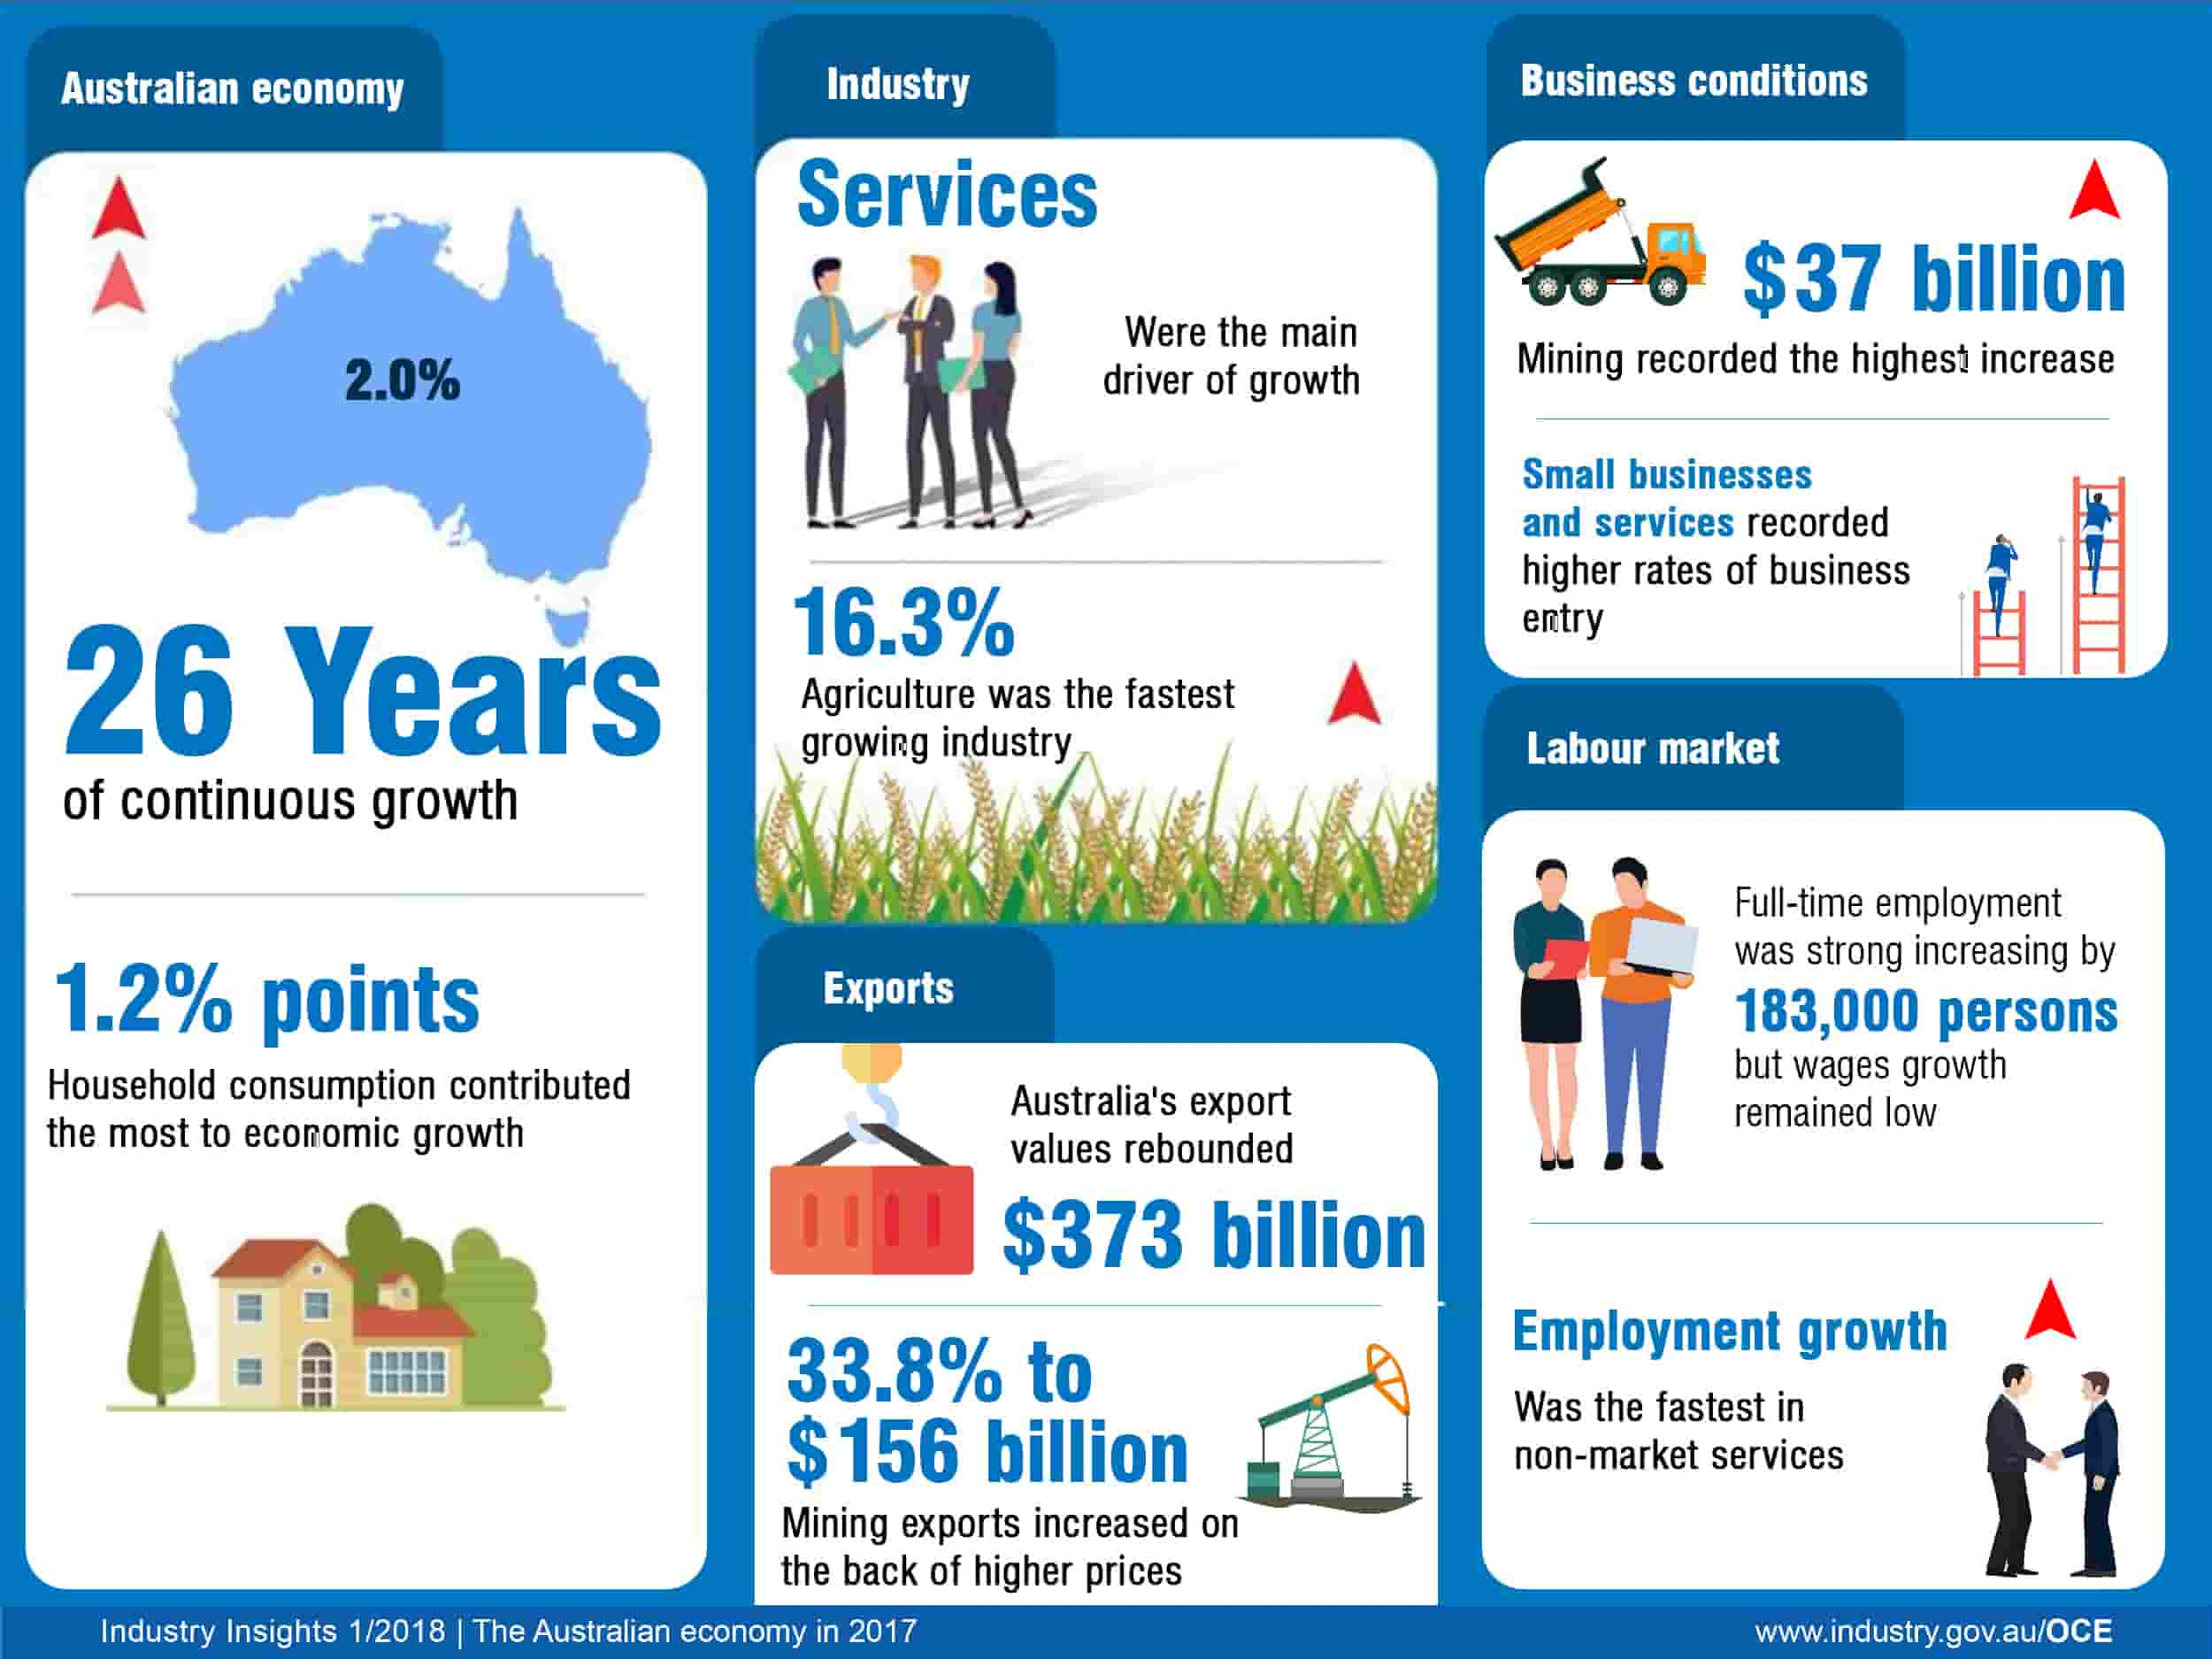 Australian Economy and Business Condition